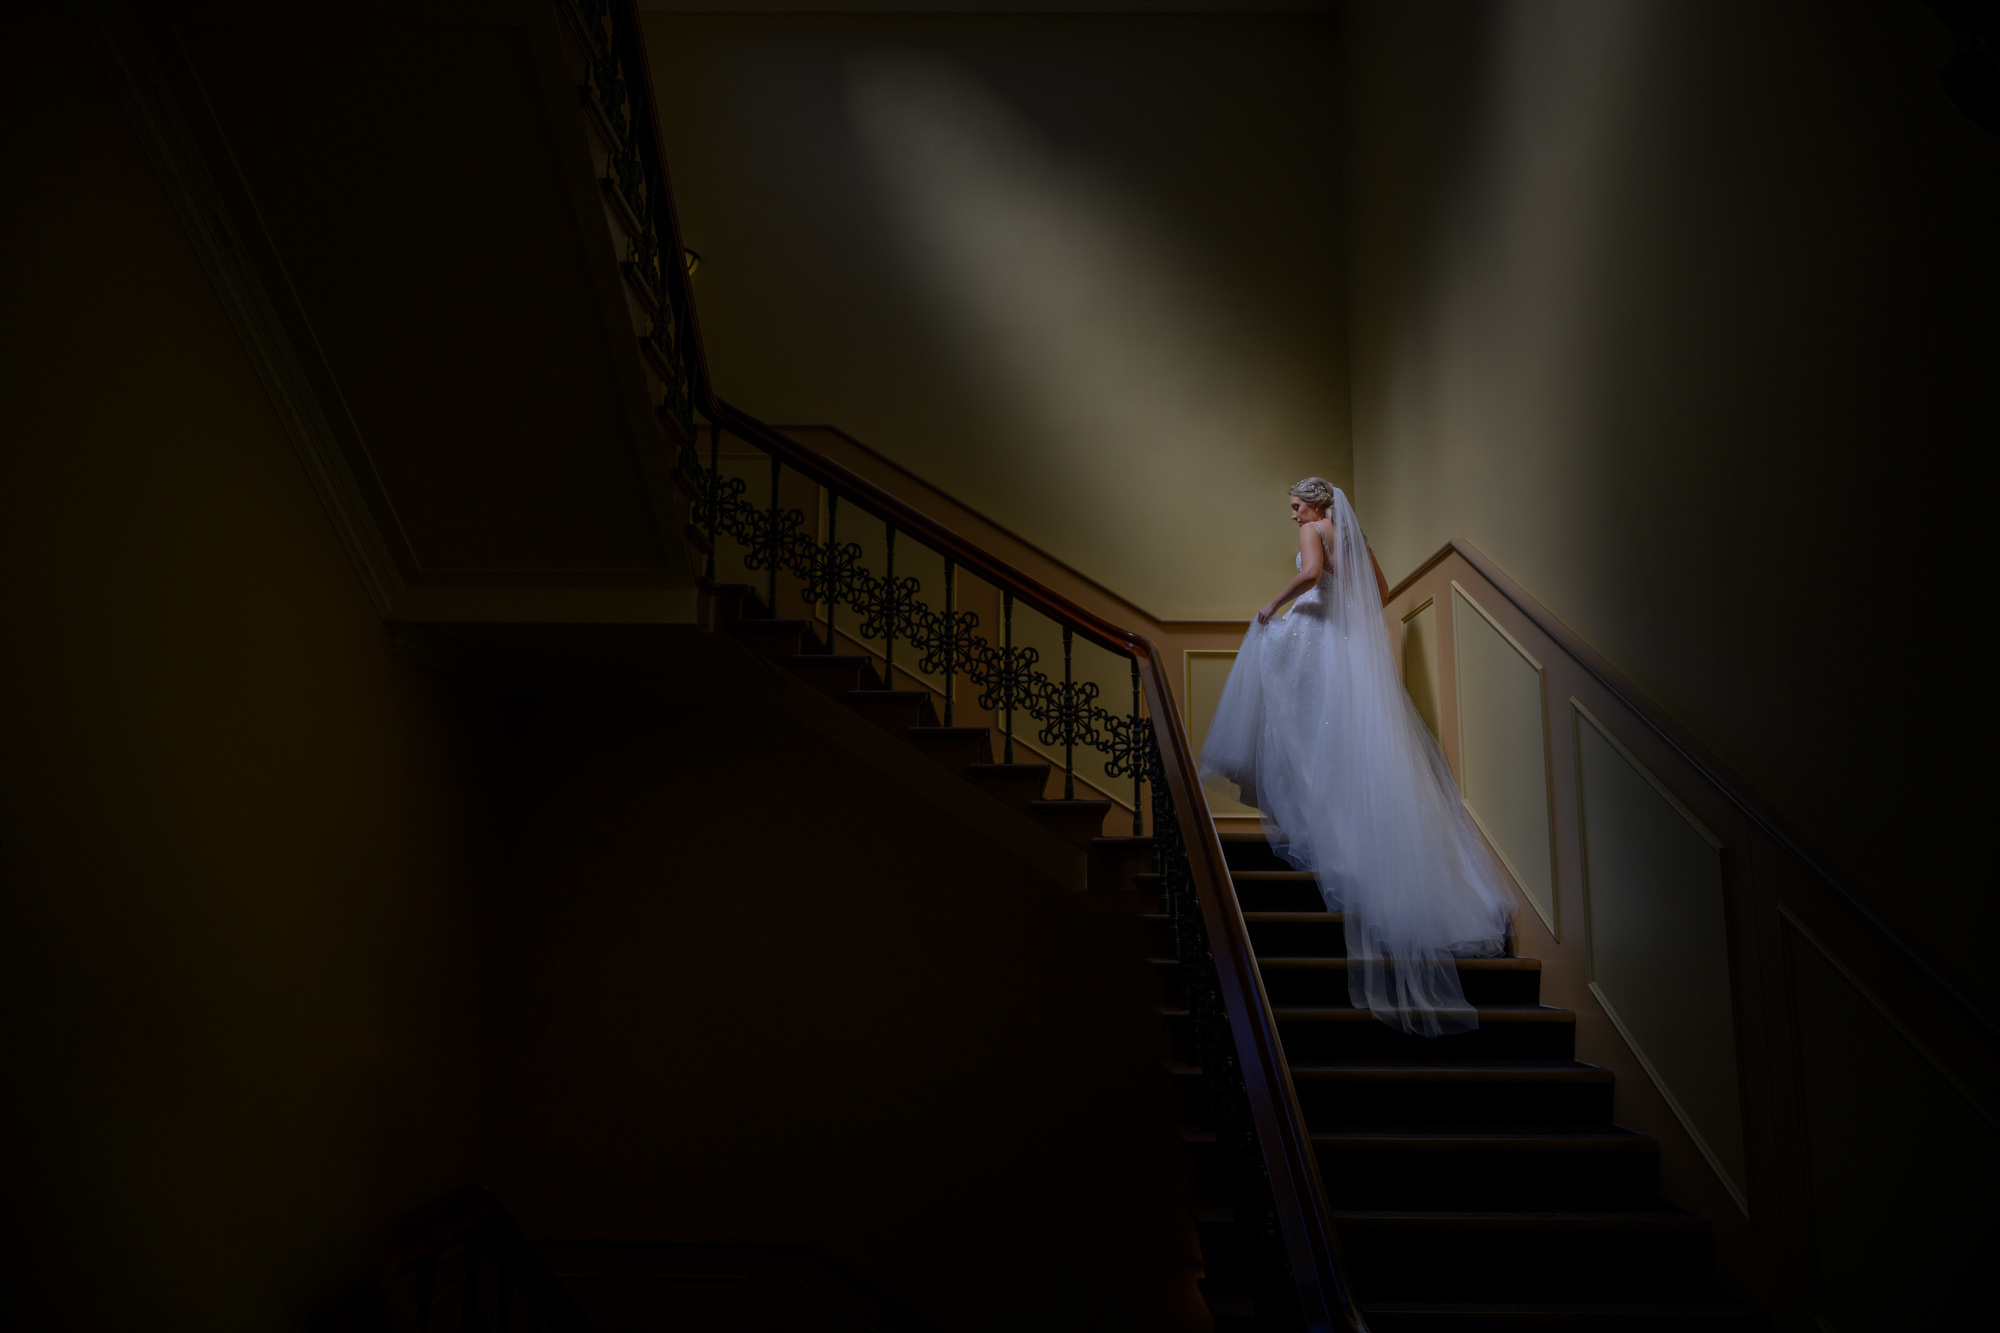 Low light photo of bride ascending stairs with veil - Studio Impressions Photography